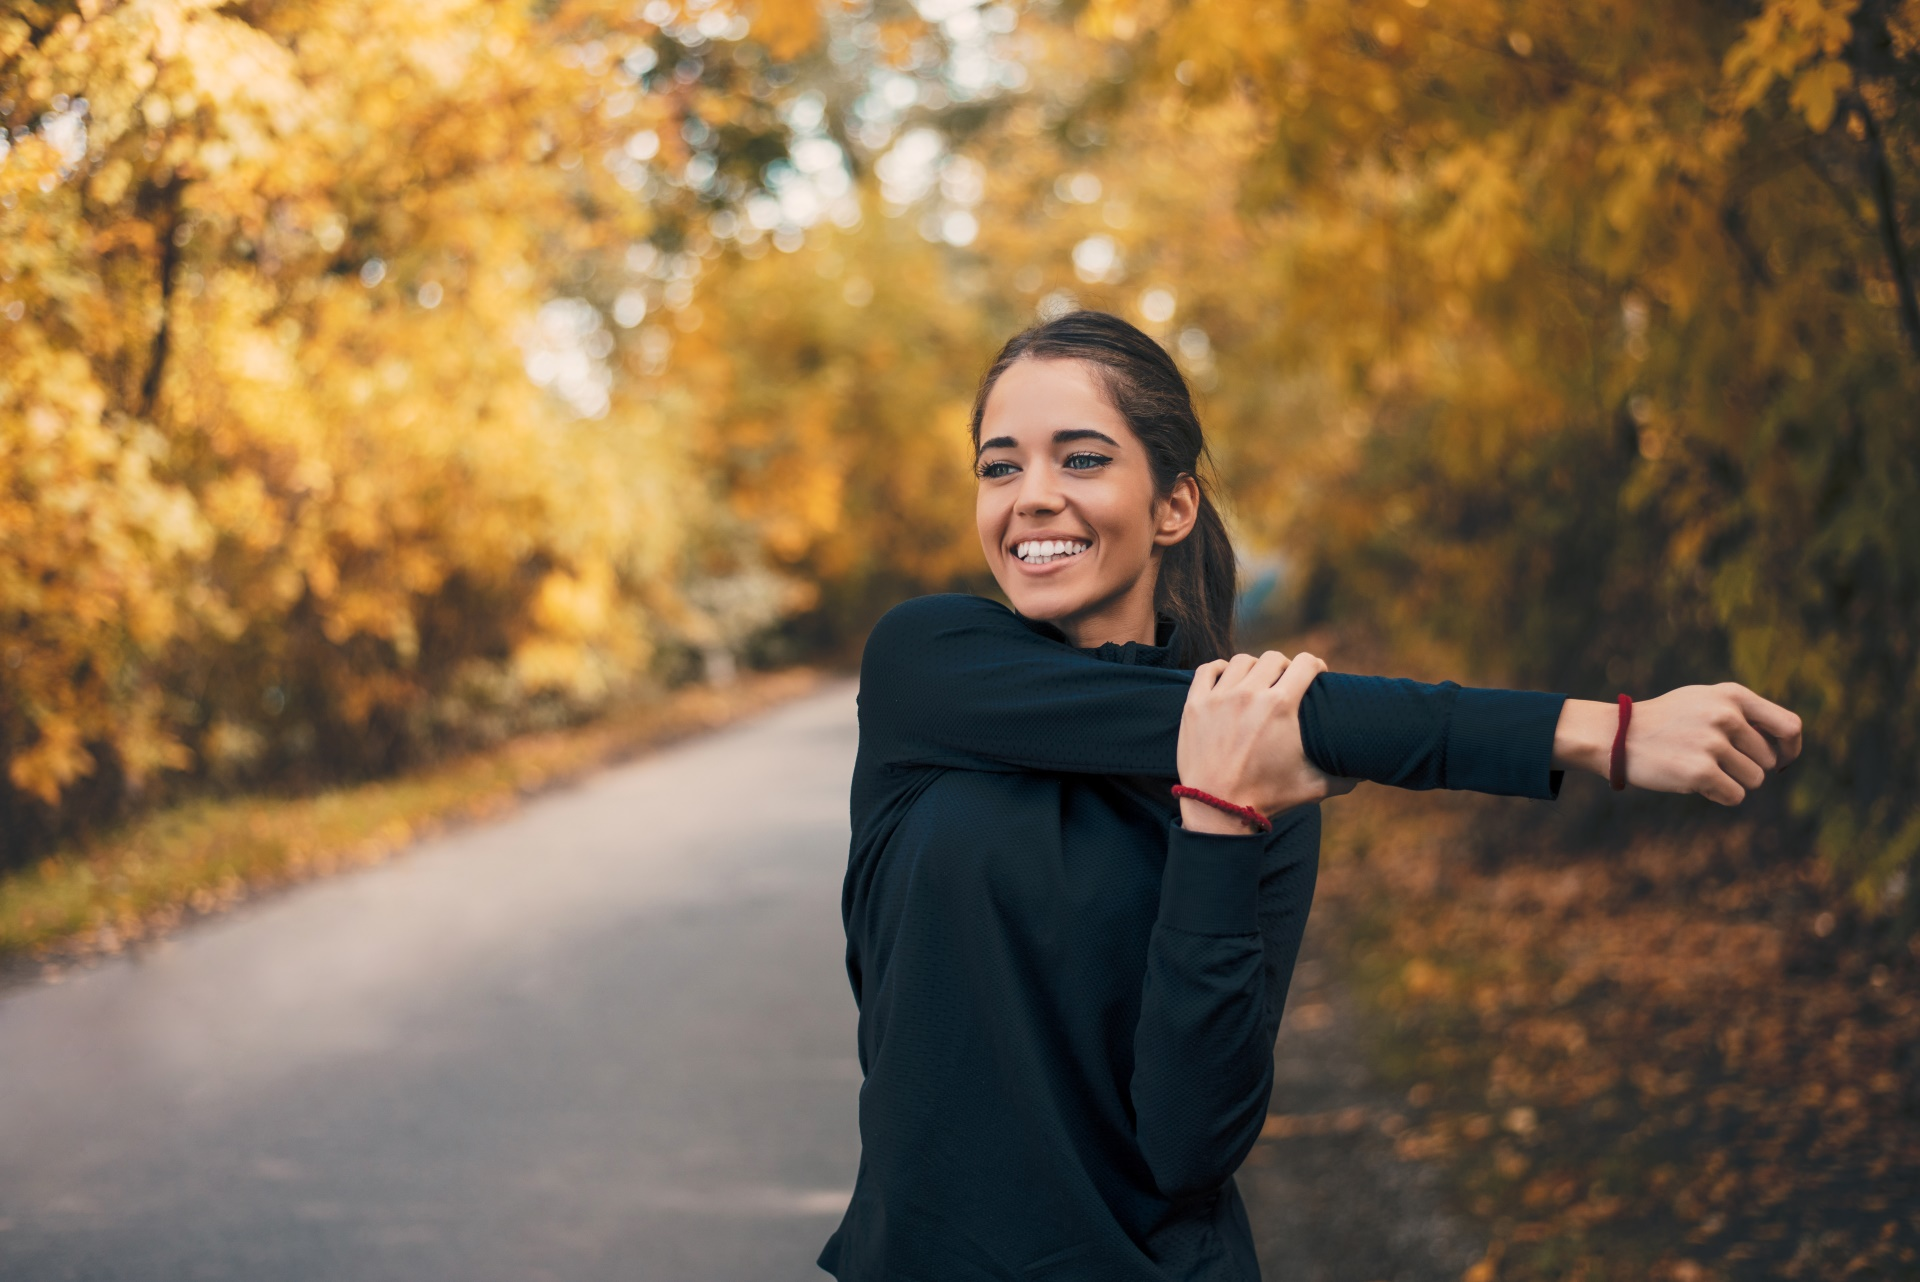 fitness model women smiling road women outdoors working out trees fall